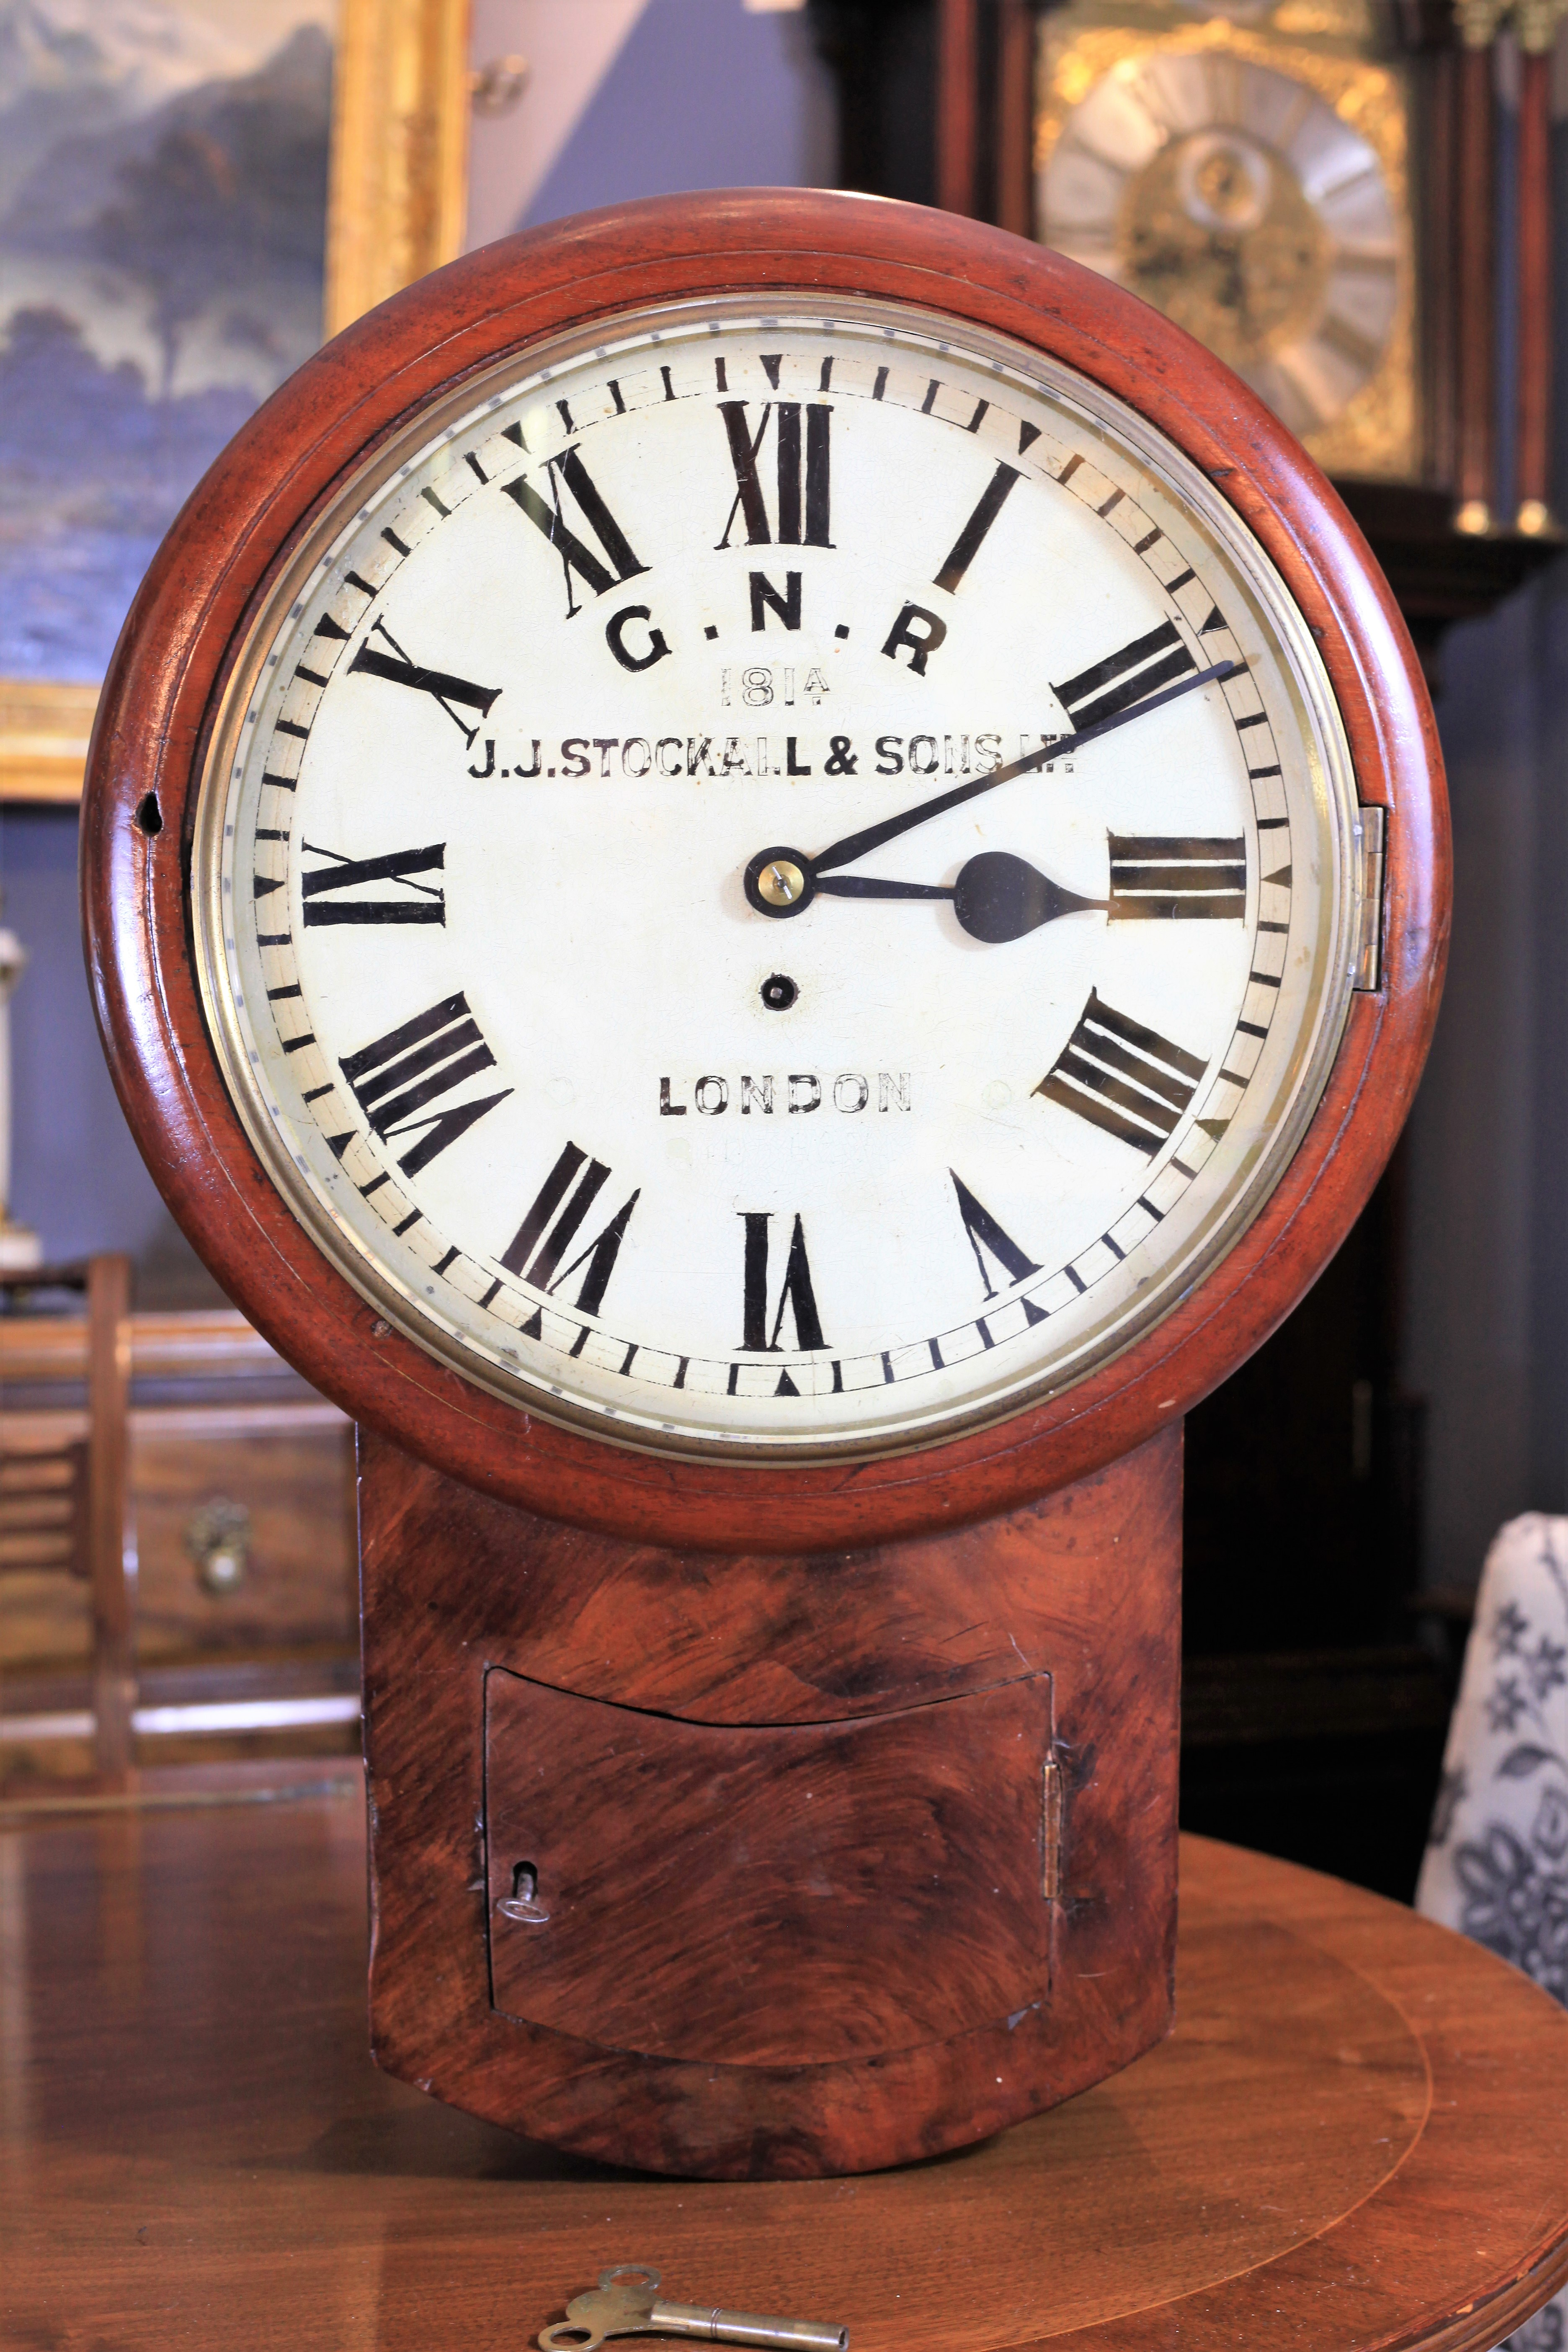 A Rare Genuine Double Sided Railway Clock From Haven House Station